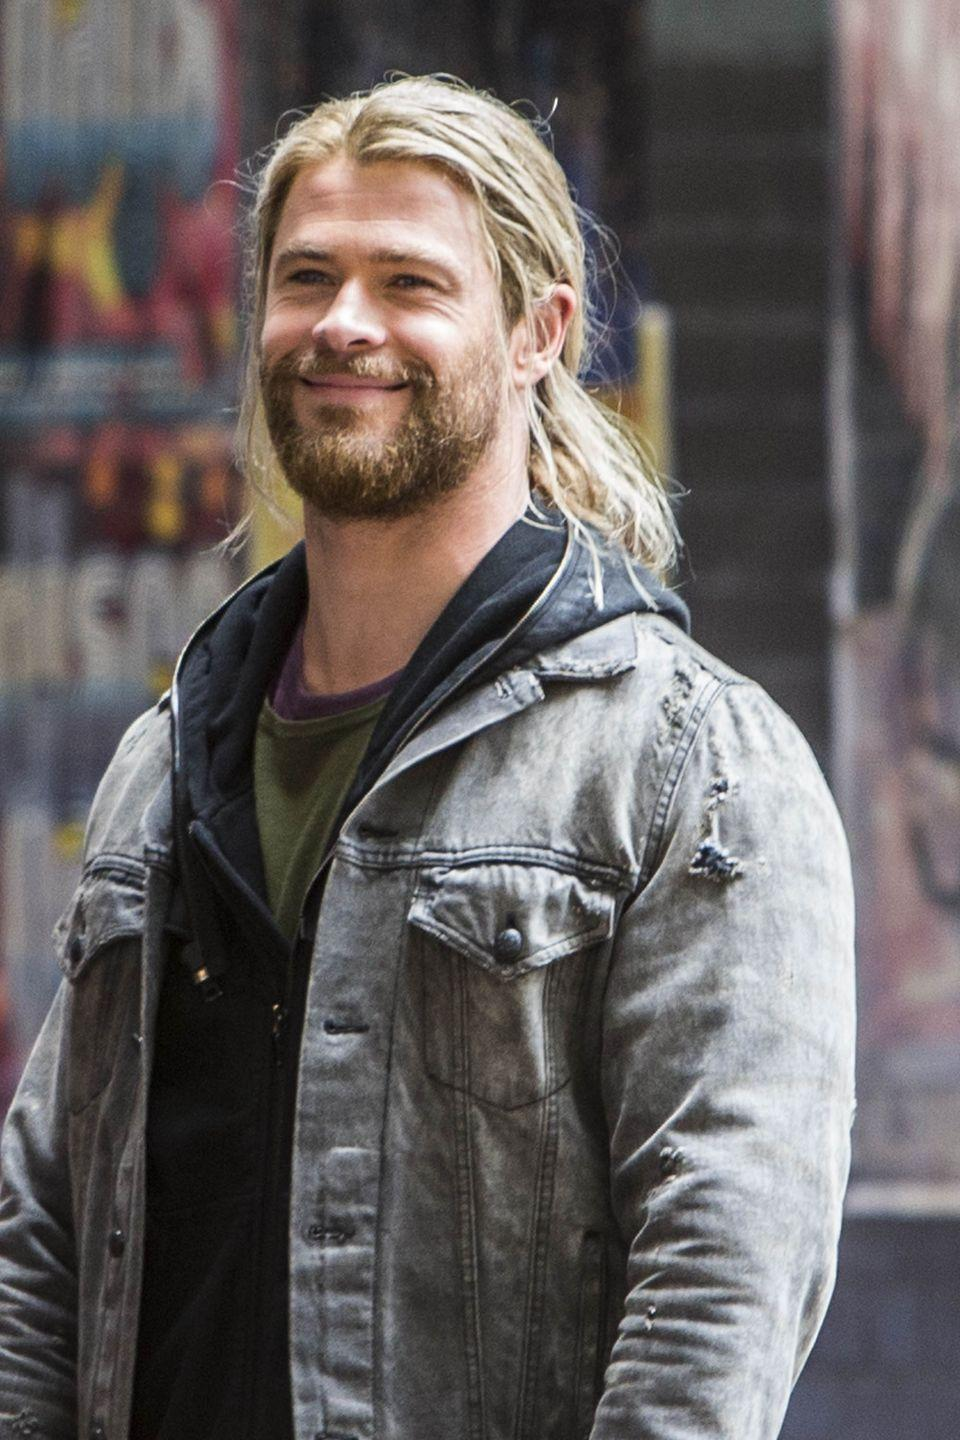 <p>Usually Chris Hemsworth wears his hair in a short cut, but while filming <em>Thor </em>the actor rocks a longer look. Based on how often the actor switches between the two hairstyles, we'd have to guess he wears extensions. Just a guess!</p>